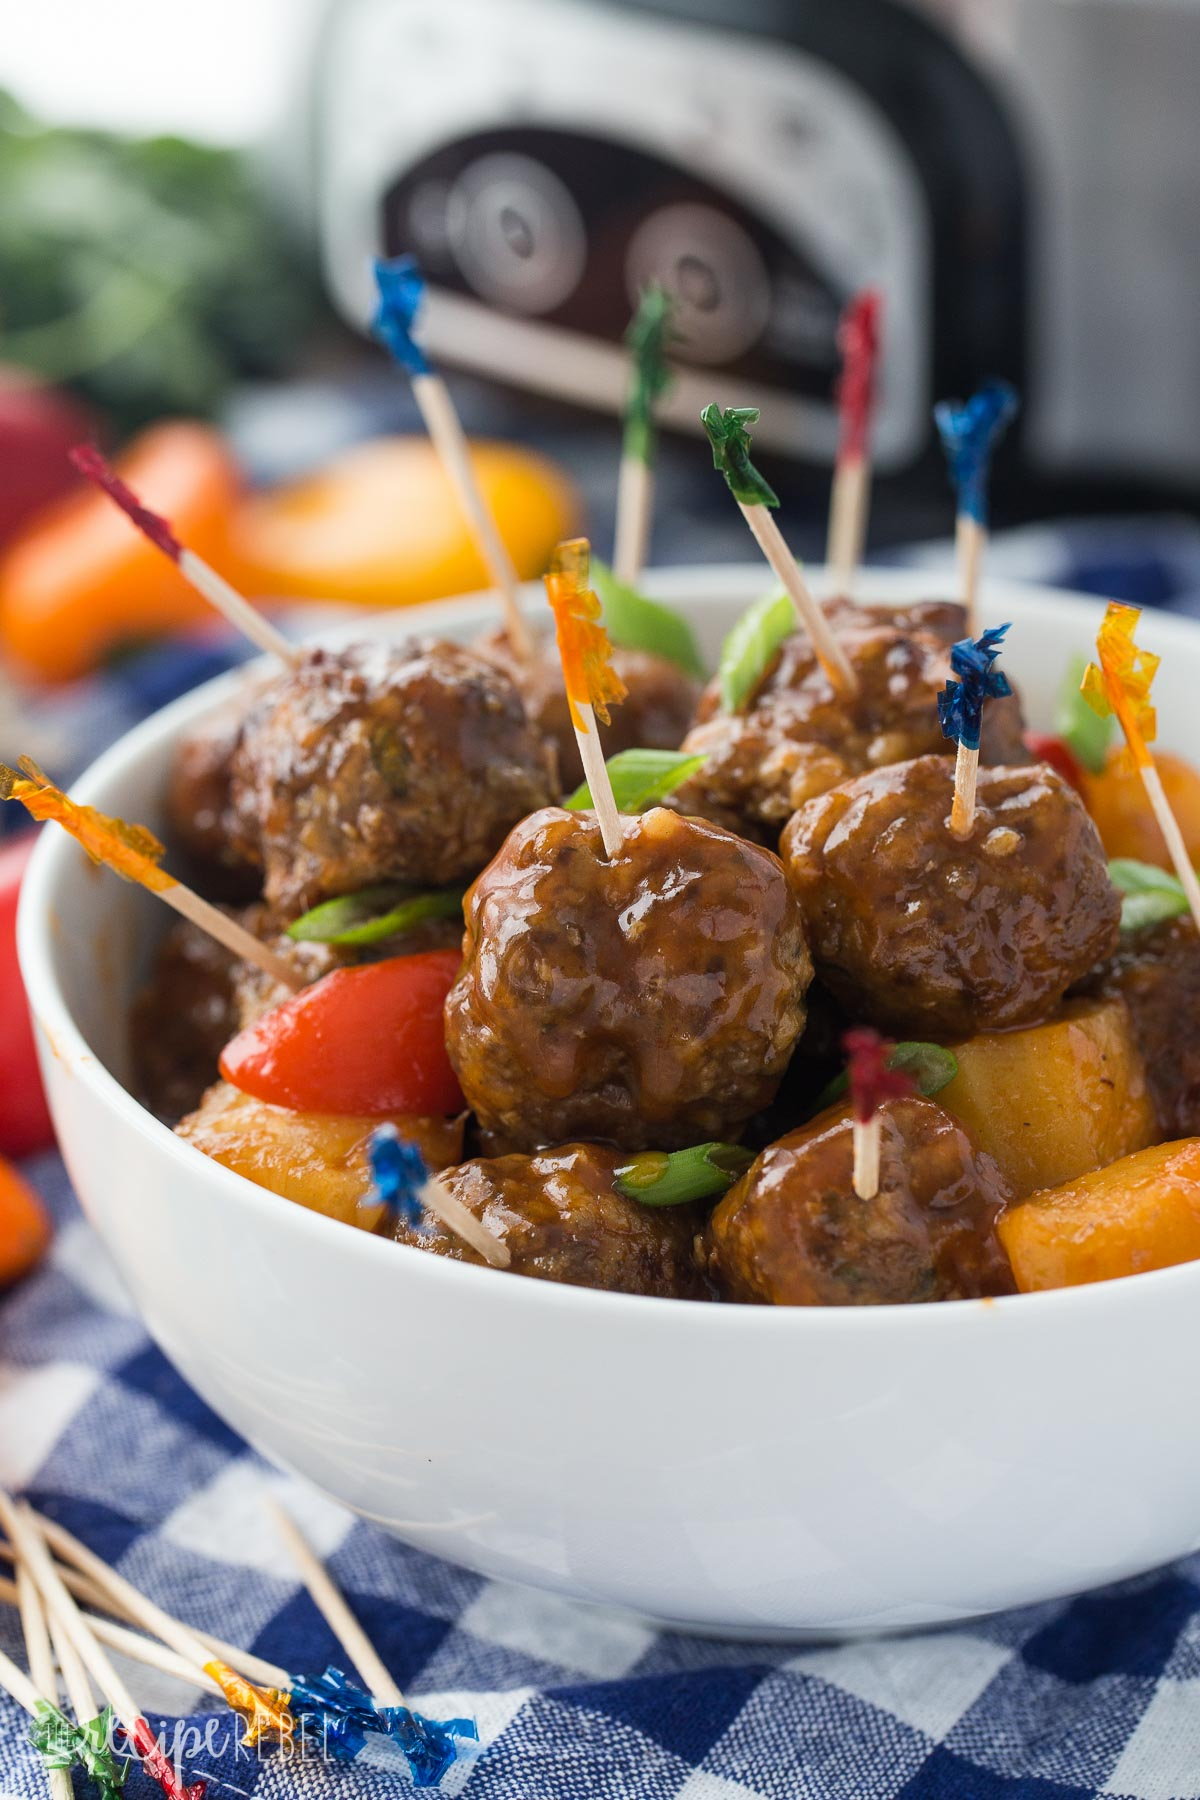 Slow-Cooker-Pineapple-Brown-Sugar-Meatballs-www.thereciperebel.com-3-of-6-2